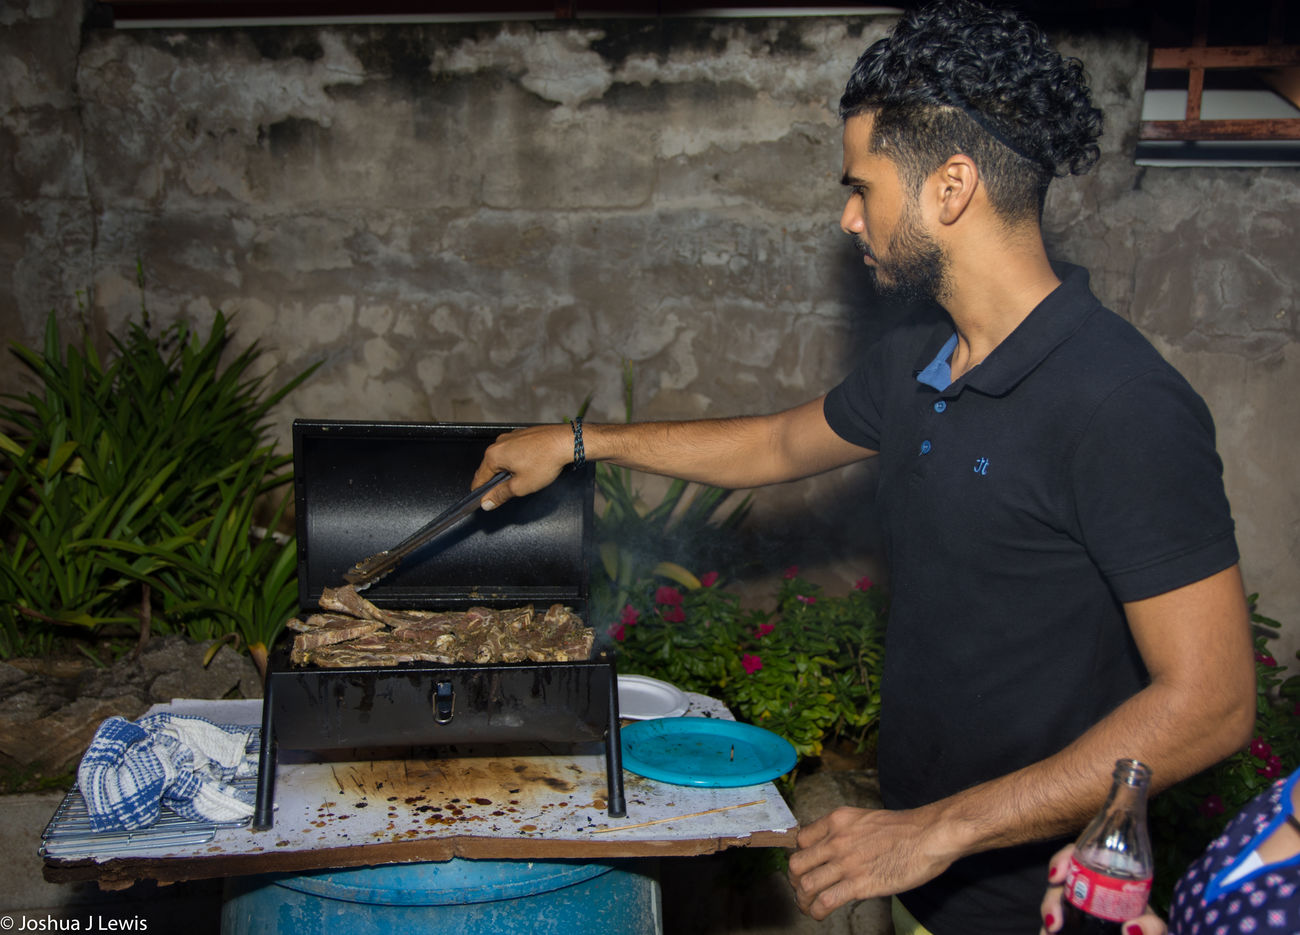 Family Time Togetherness Smiling Casual Clothing Birthdayparty Stillife Caribbean Trinidad And Tobago Real People Party - Social Event Celebration Happiness Beautiful People Food And Drink